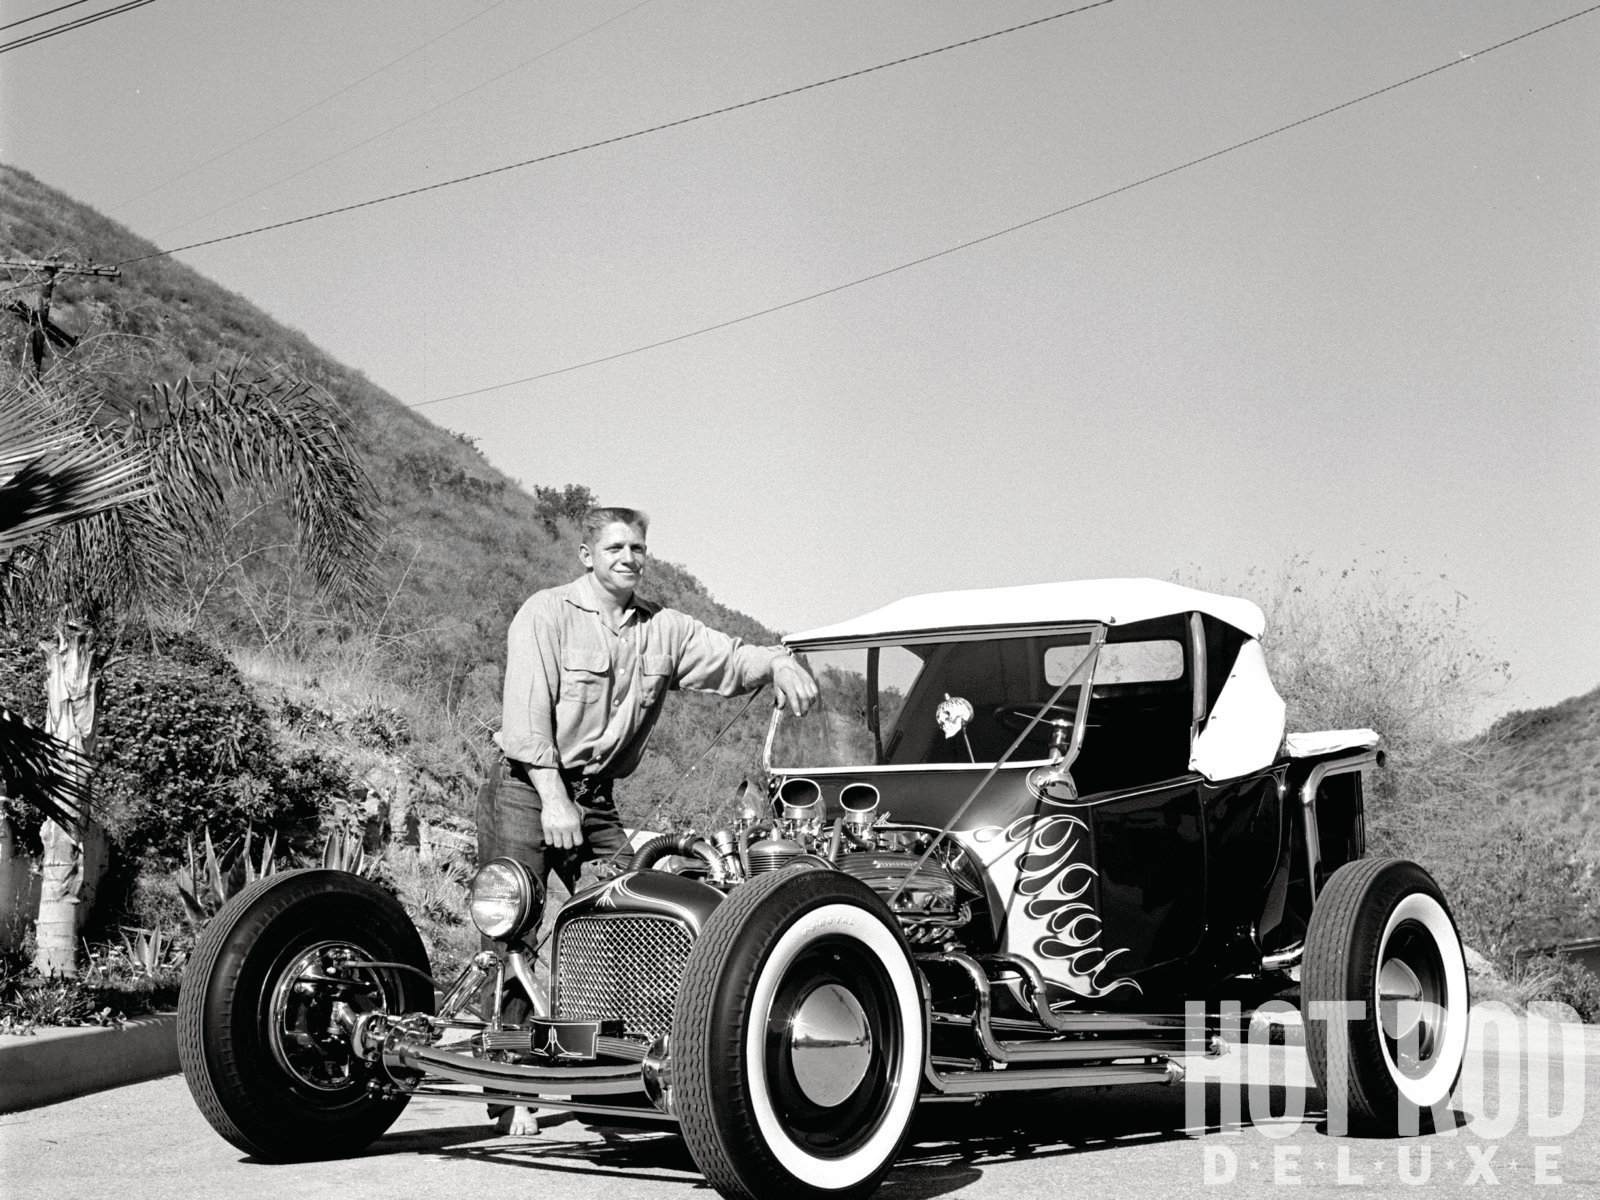 """These two shots turned up on a roll exposed by Bob D'Olivo for Car Craft in late November 1956, depicting the roadster as most folks remember it from television appearances. In the year and a half since HRM's initial photo session, Norm obviously made many modifications. The custom ragtop was inspired by a stunt driver's crash. Norm rightly reasoned that by concealing the driver from most camera angles, he could hire himself out for film and TV gigs, along with the vehicle. The identity of the beer-chugging child remains a mystery, as Grabowski never fathered any, according to old friends. Even the photographer draws a blank: """"The kid can't possibly be related,"""" quipped D'Olivo. """"He's wearing shoes, and Norm isn't!"""""""